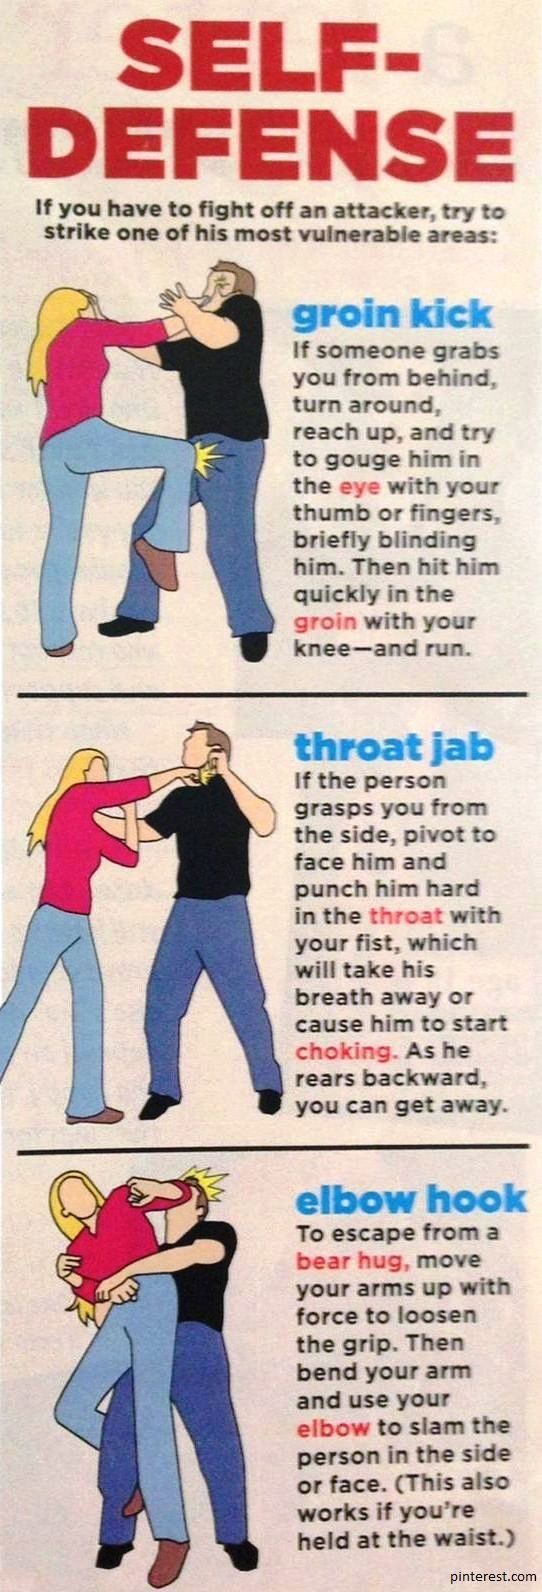 Staying safe comes first in any fight, then you can punch back the attacker! Here are five body parts you must defend regardless of the nature of the attack.